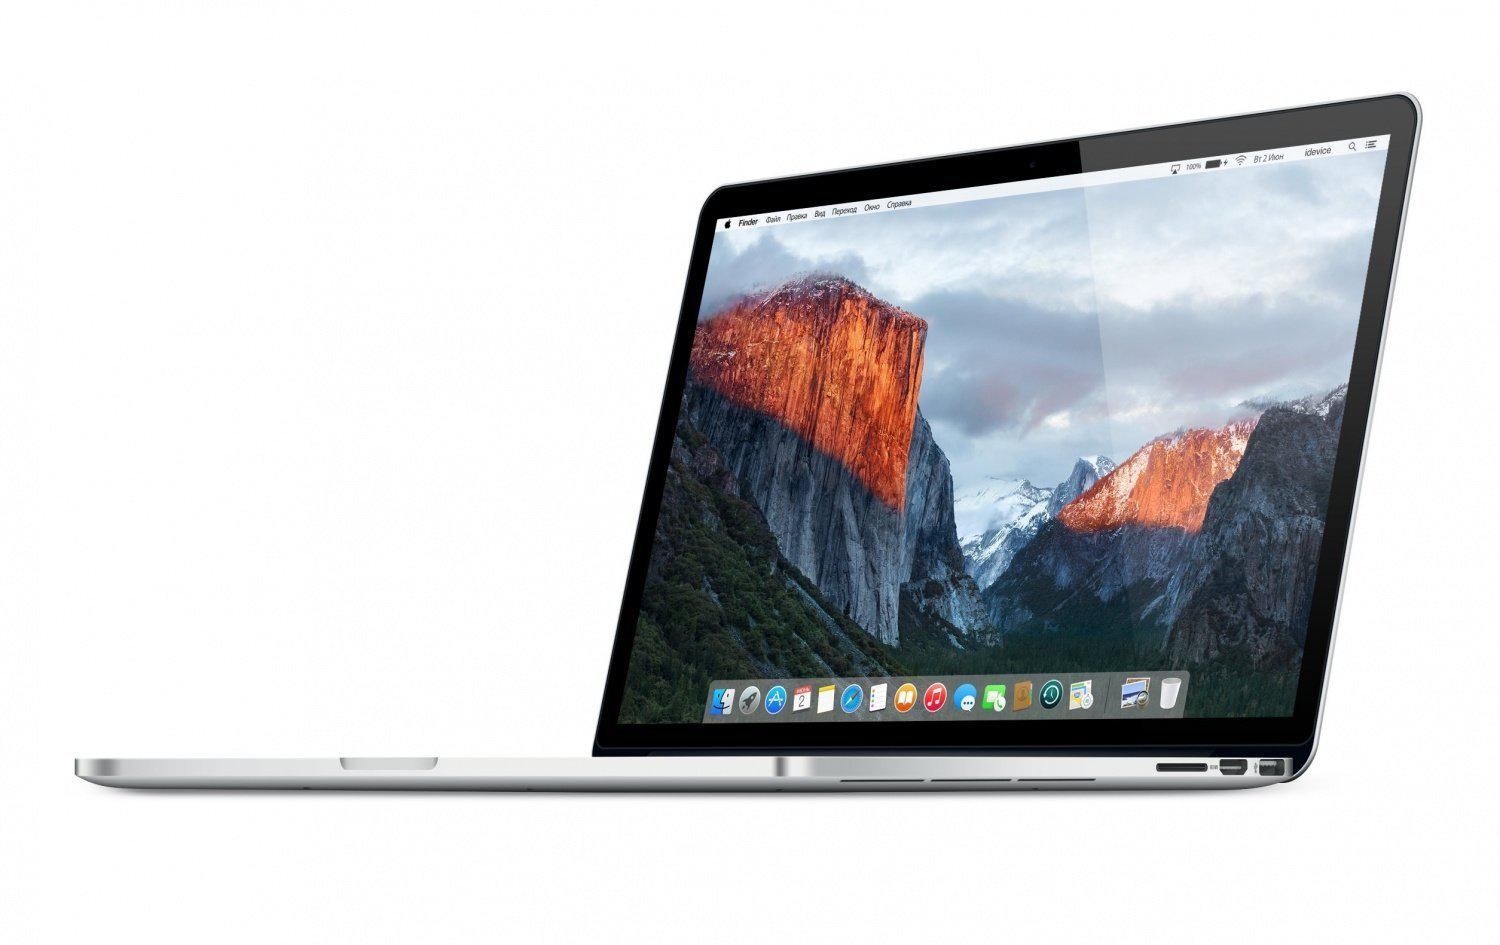 Apple Macbook Pro 15 Retina I7 2.2 Ghz 16GB Mid 2014 MGXA2LL/A